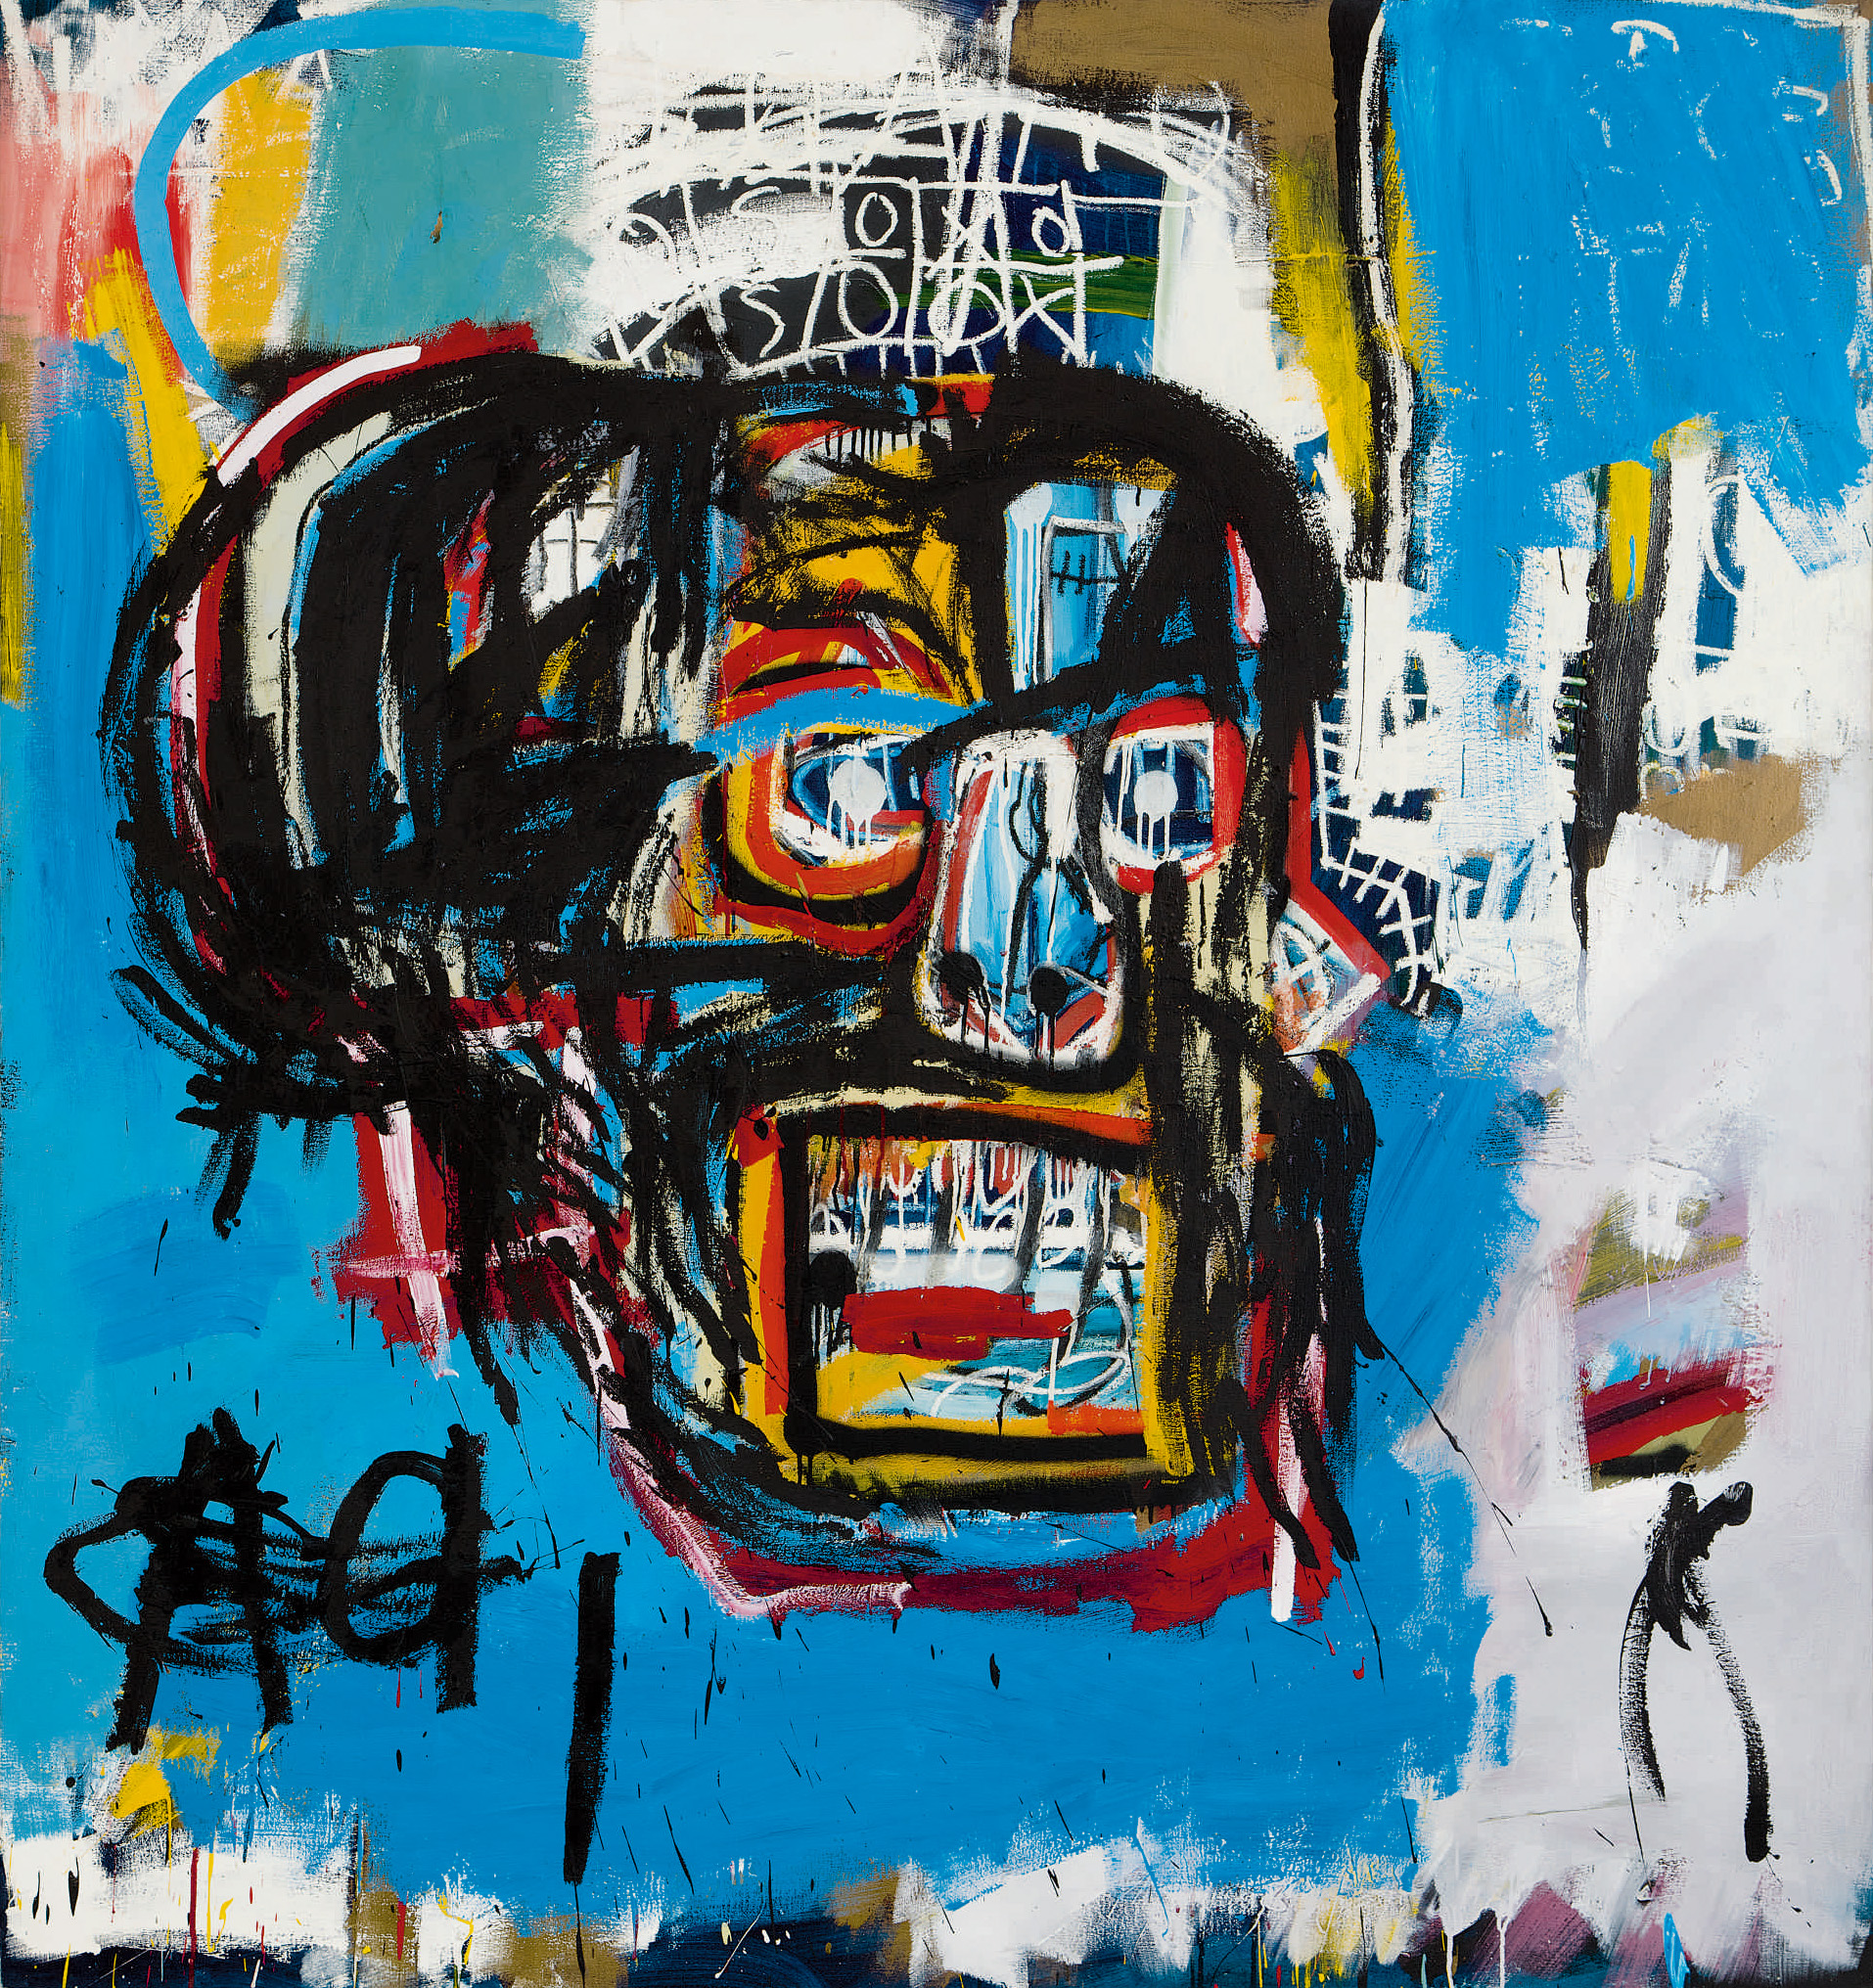 foto de KUOW - The expensive mystique of Basquiat is coming to Seattle